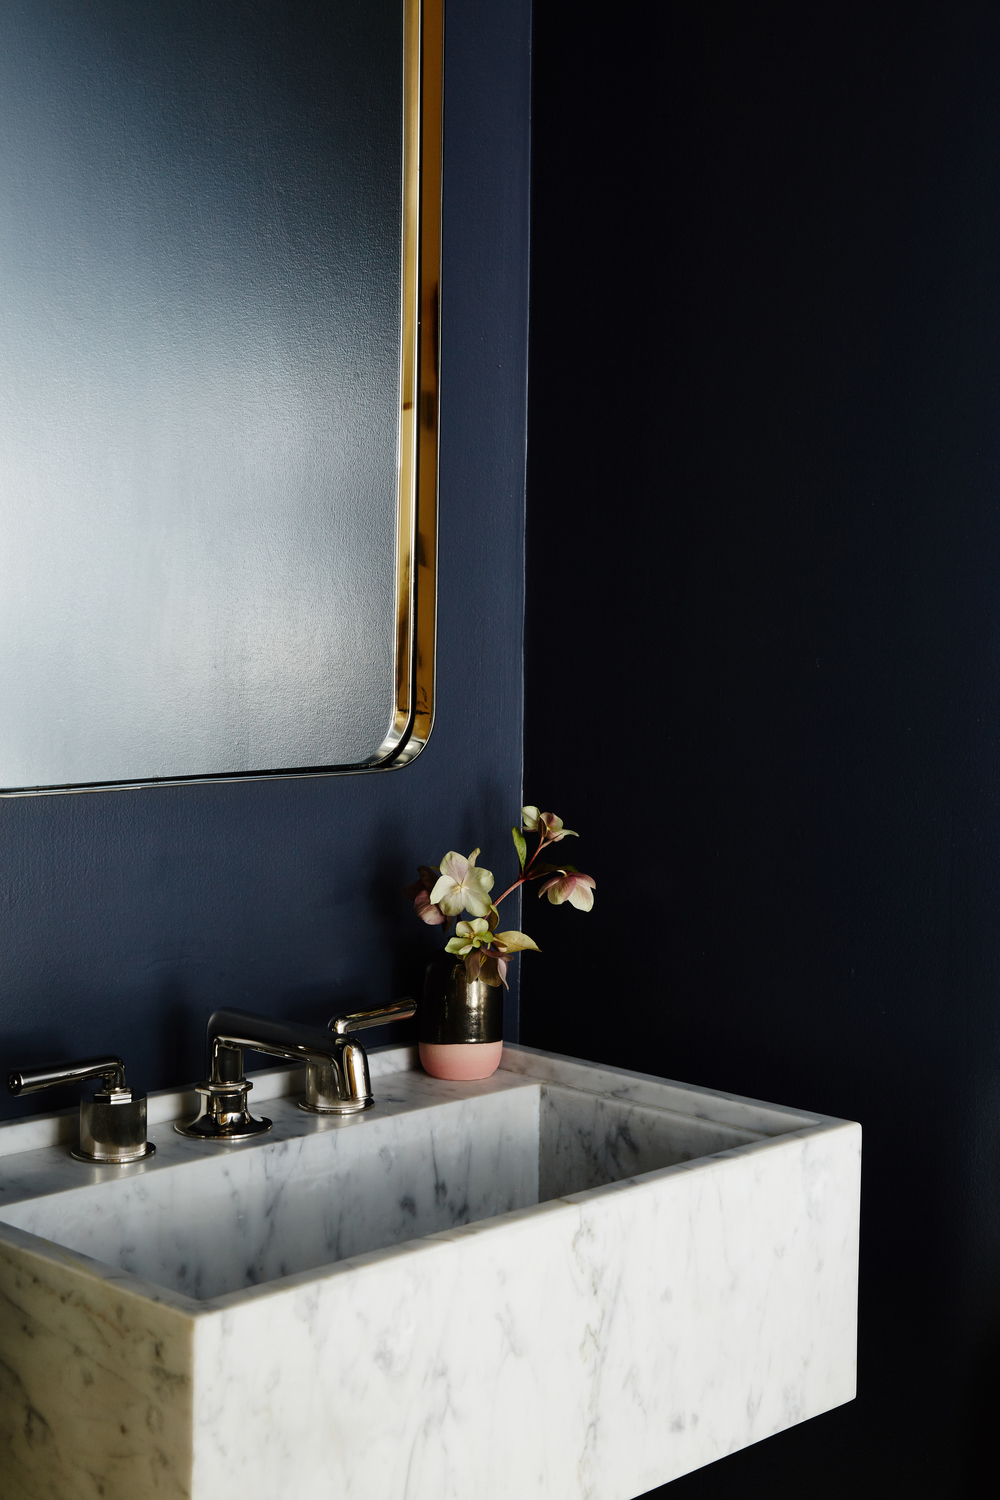 6 Ways to Use the Trendy Navy Blue and Gold Color Scheme 07 navy blue and gold color scheme 6 Ways to Use the Trendy Navy Blue and Gold Color Scheme 6 Ways to Use the Trendy Navy Blue and Gold Color Scheme 07